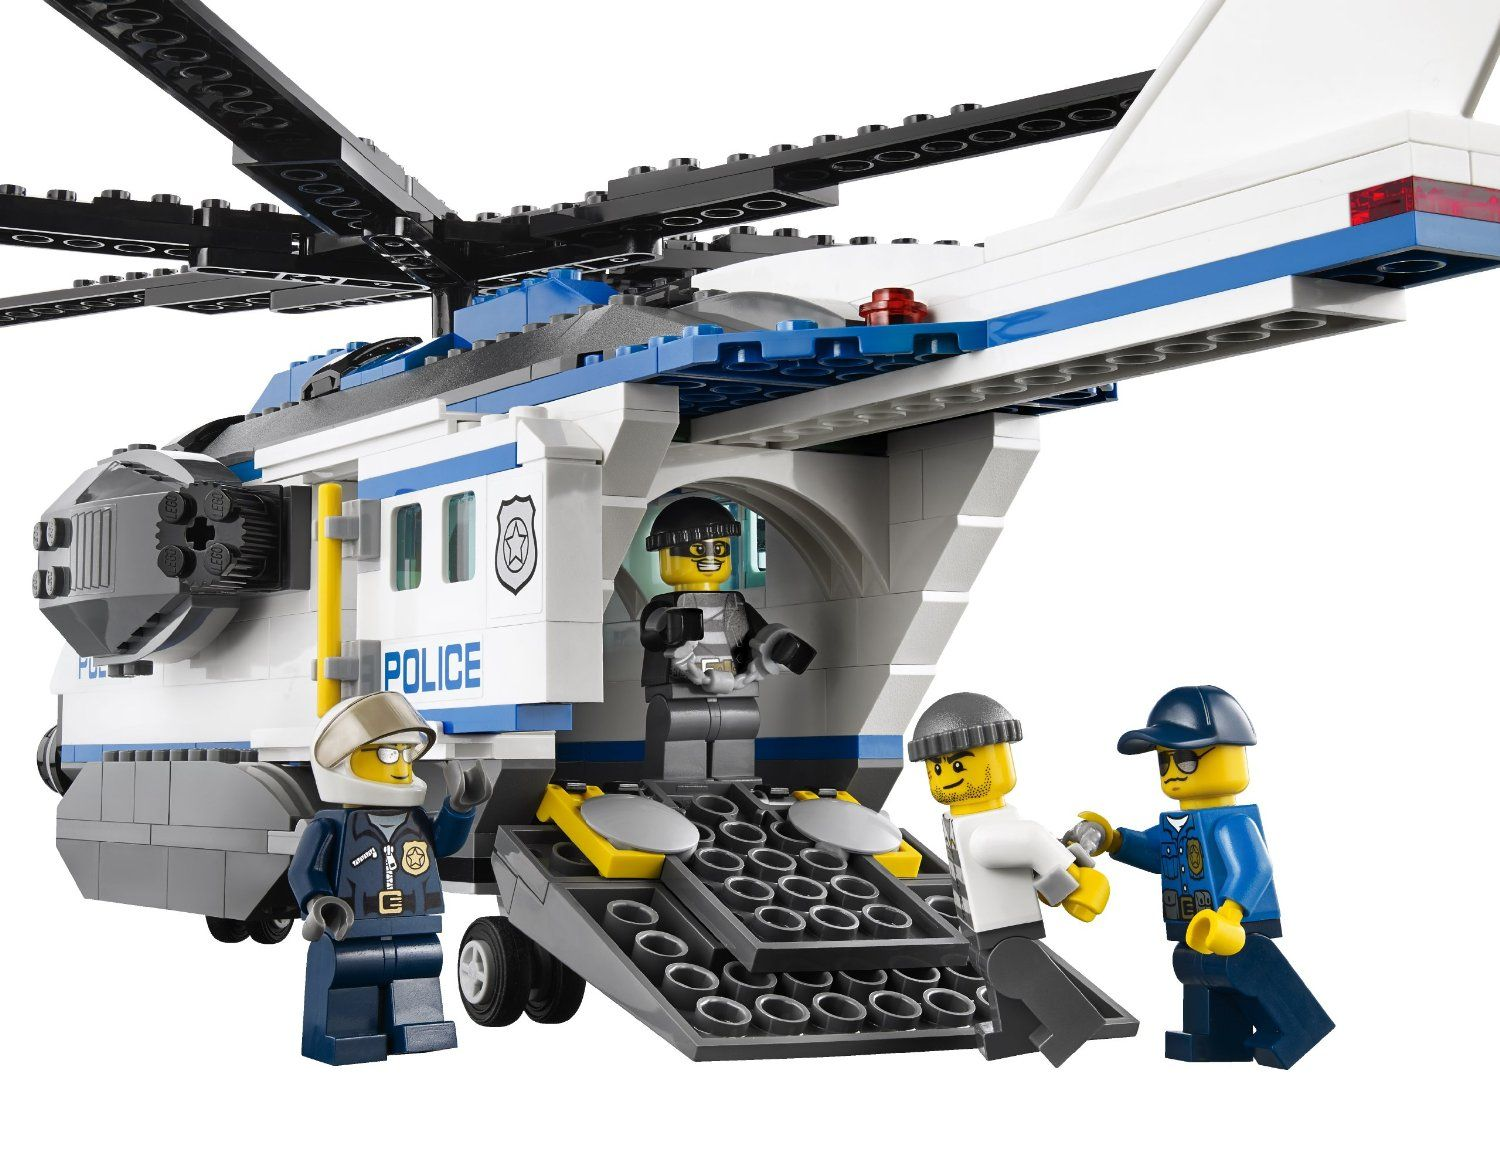 lego city police helicopters with Lego 60046 Helicopter Surveillance on P567846 together with Lego 60046 Helicopter Surveillance additionally Lego City Police Station Coloring Page Sketch Templates likewise Review 71266 Chase Mccain besides Lego Police Helicopter Set 4473 Instructions.